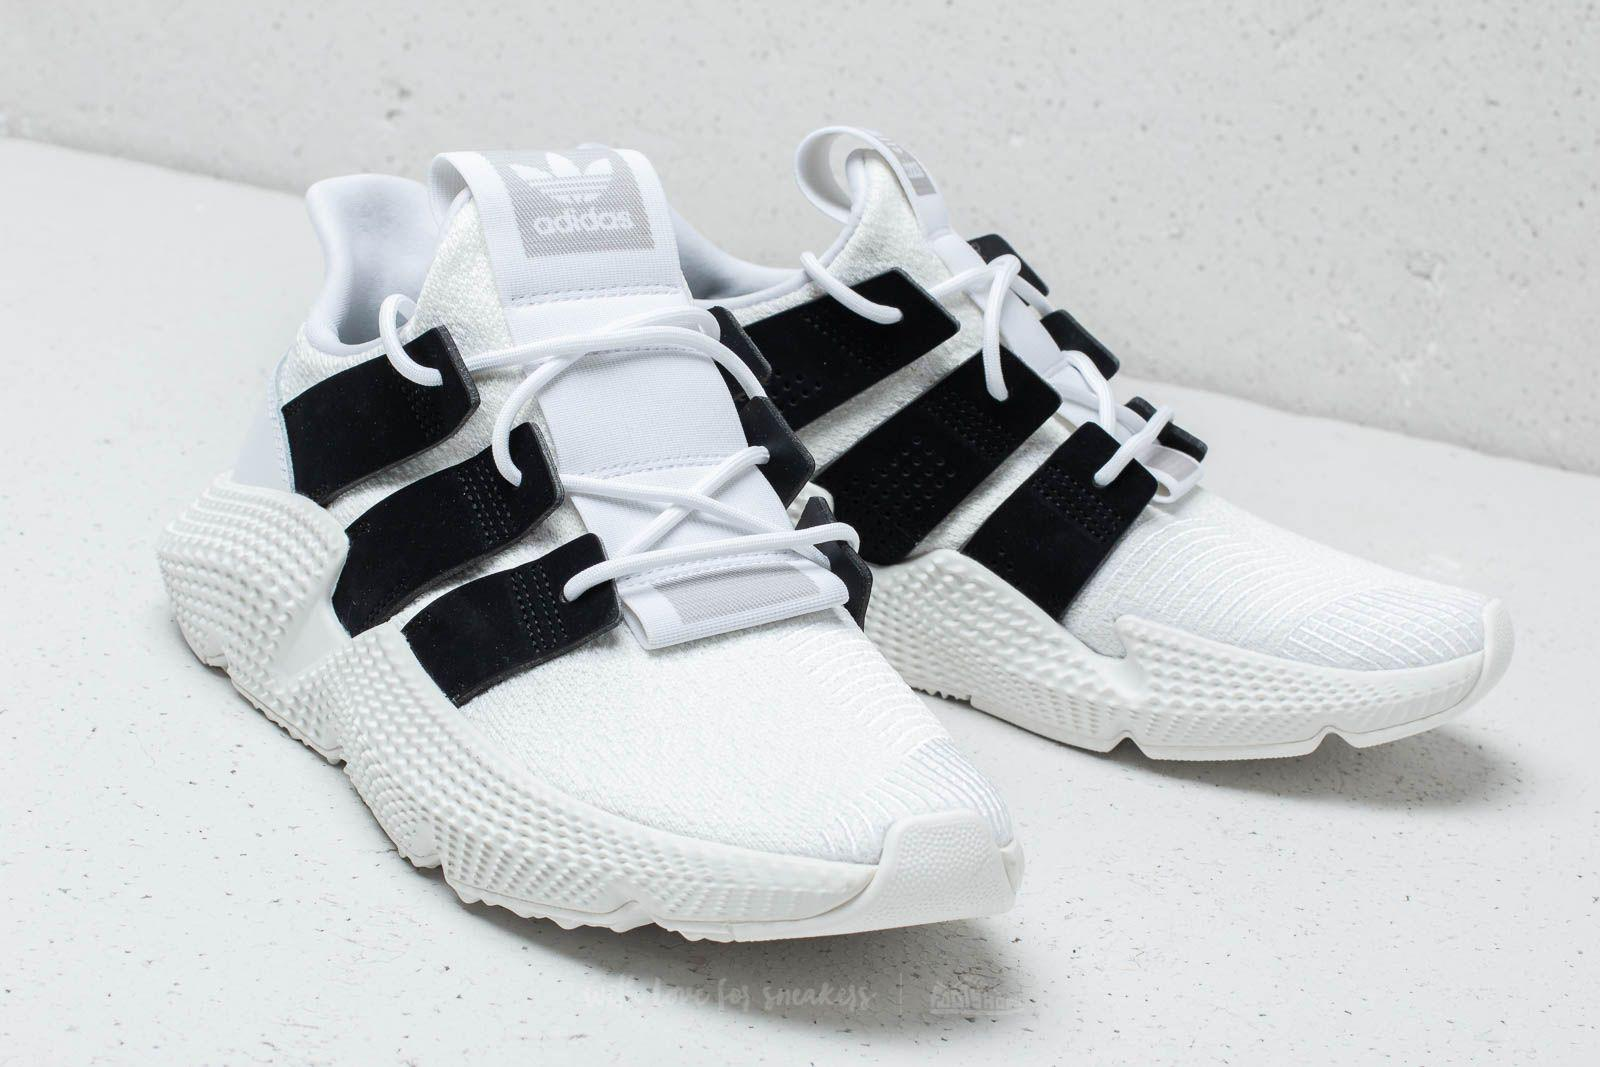 3d23cdd1aad0a Lyst - adidas Originals Adidas Prophere Ftw White  Core Black  Shock ...